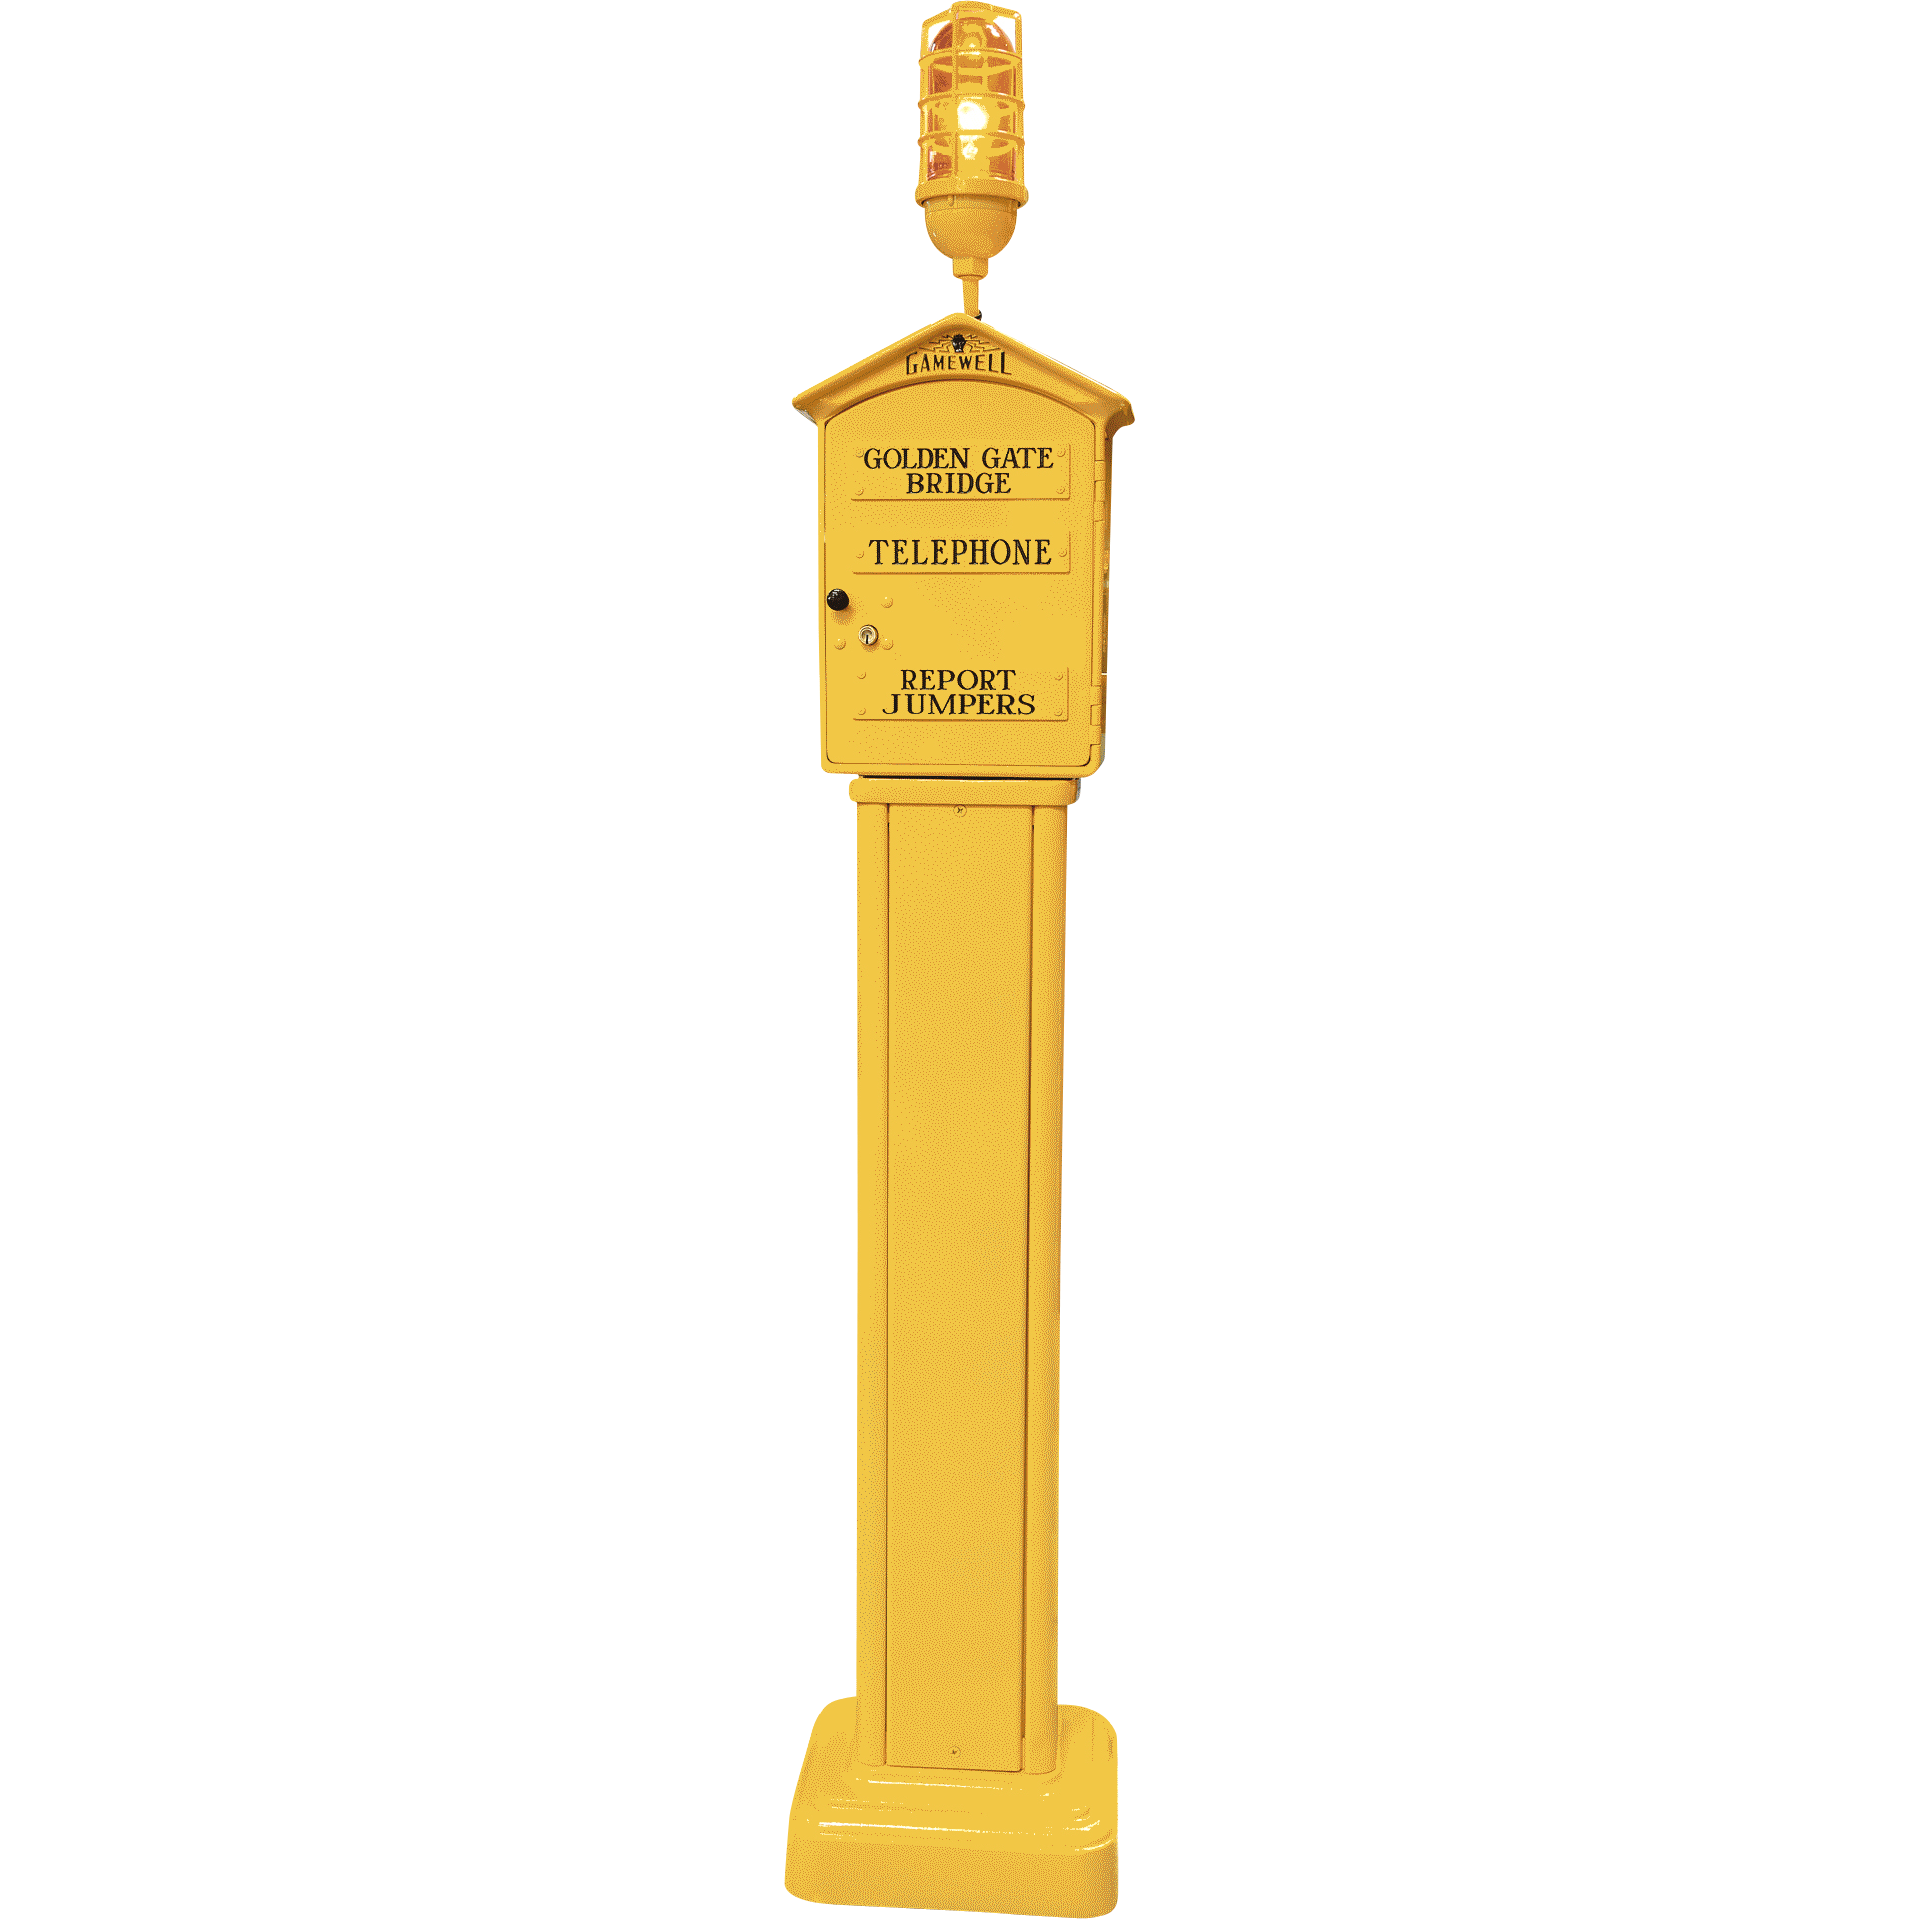 Gamewell Golden Gate Bridge Call Box on Pedestal